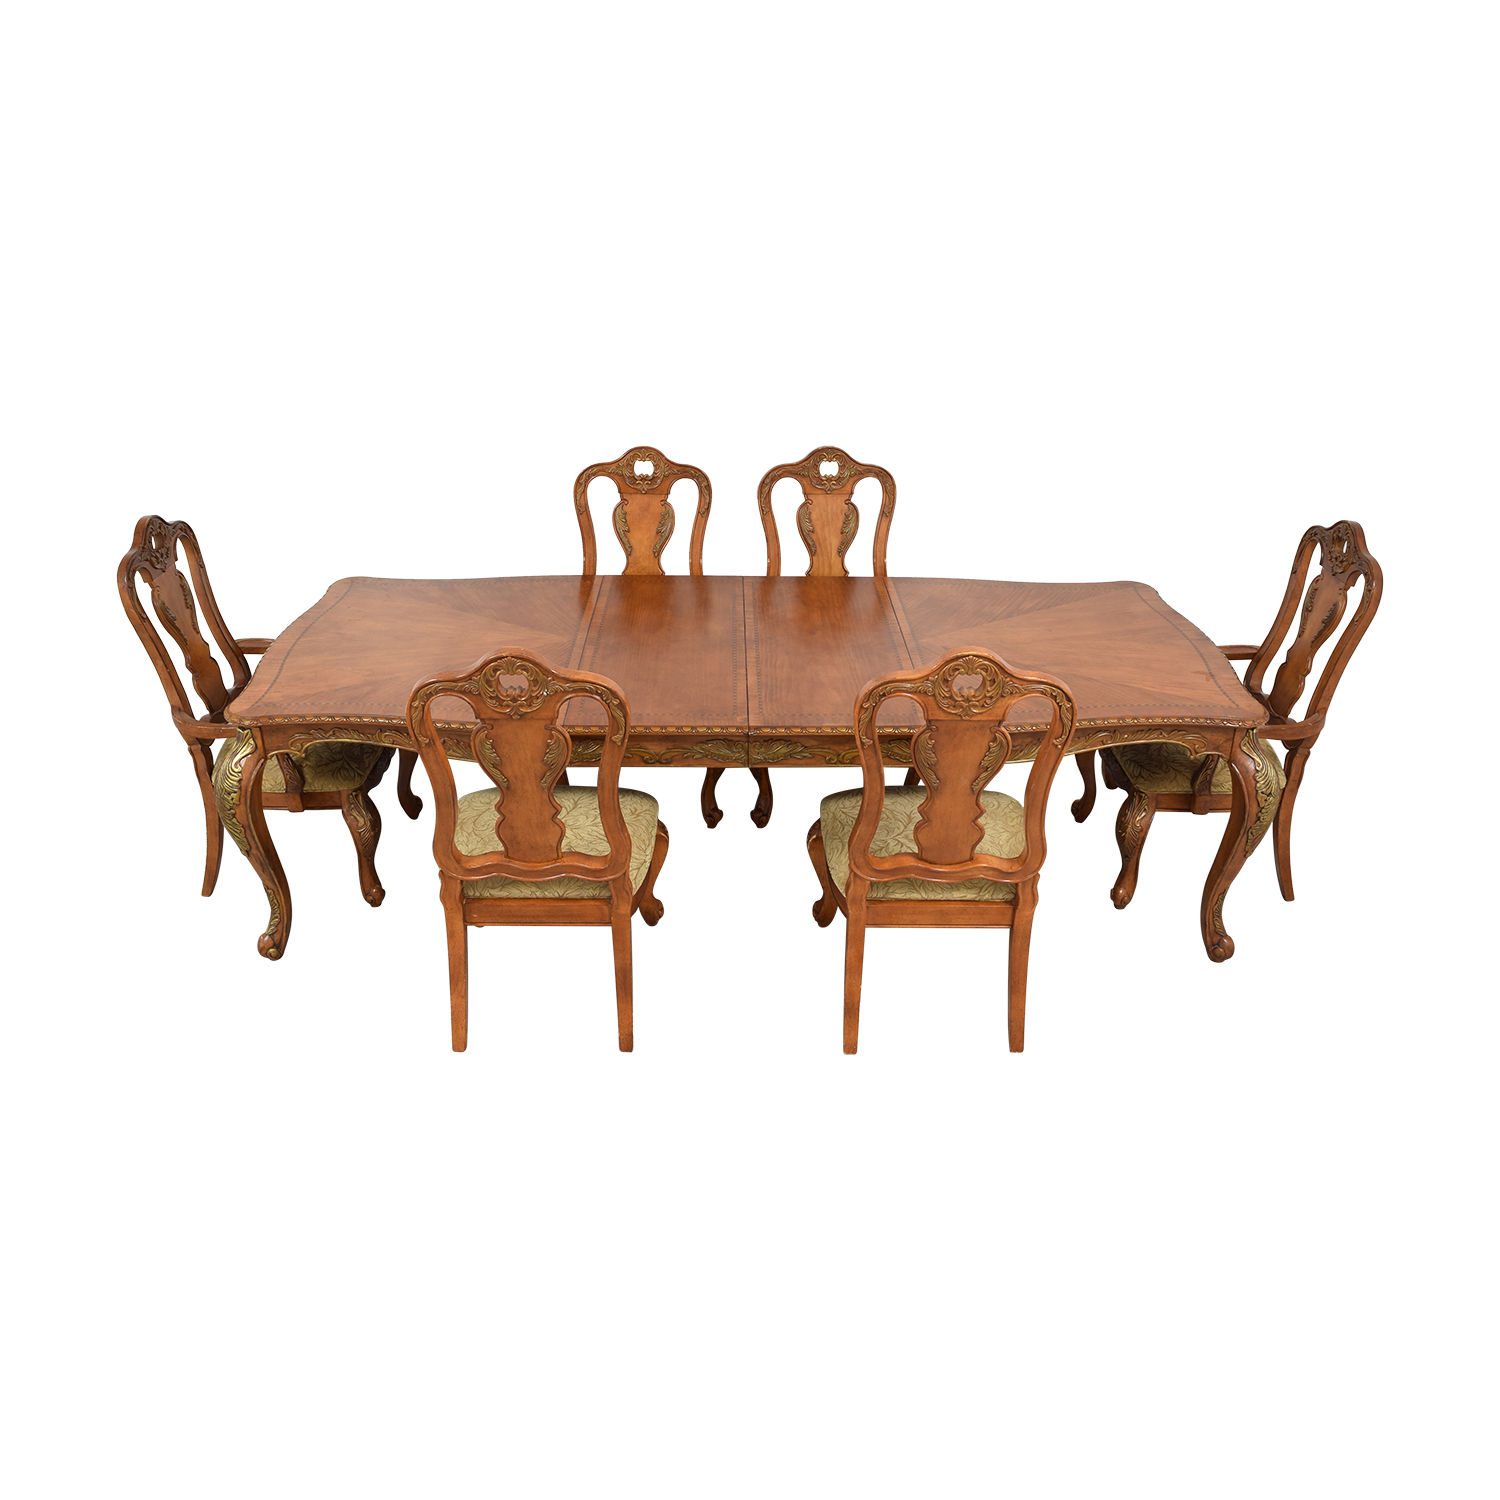 Raymour & Flanigan Raymour & Flanigan Extendable Wood Dining Set second hand